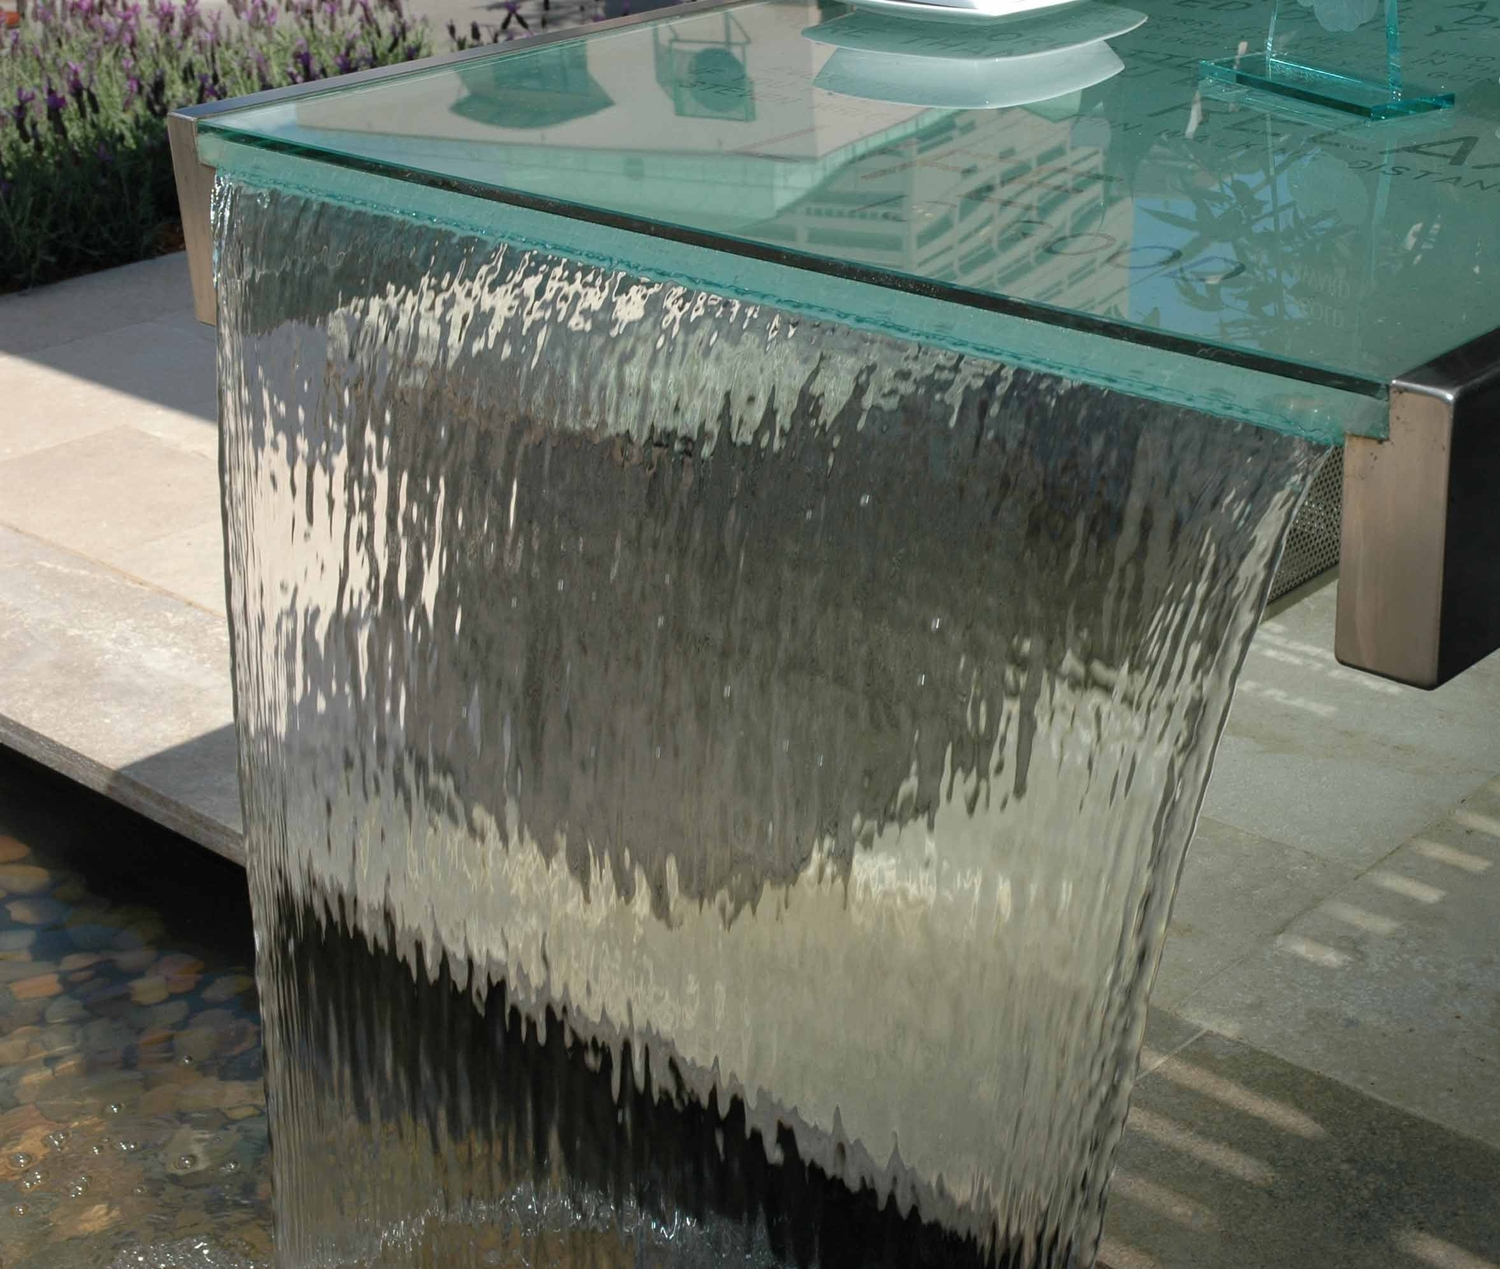 TableWaterFeature-Close Up.jpg